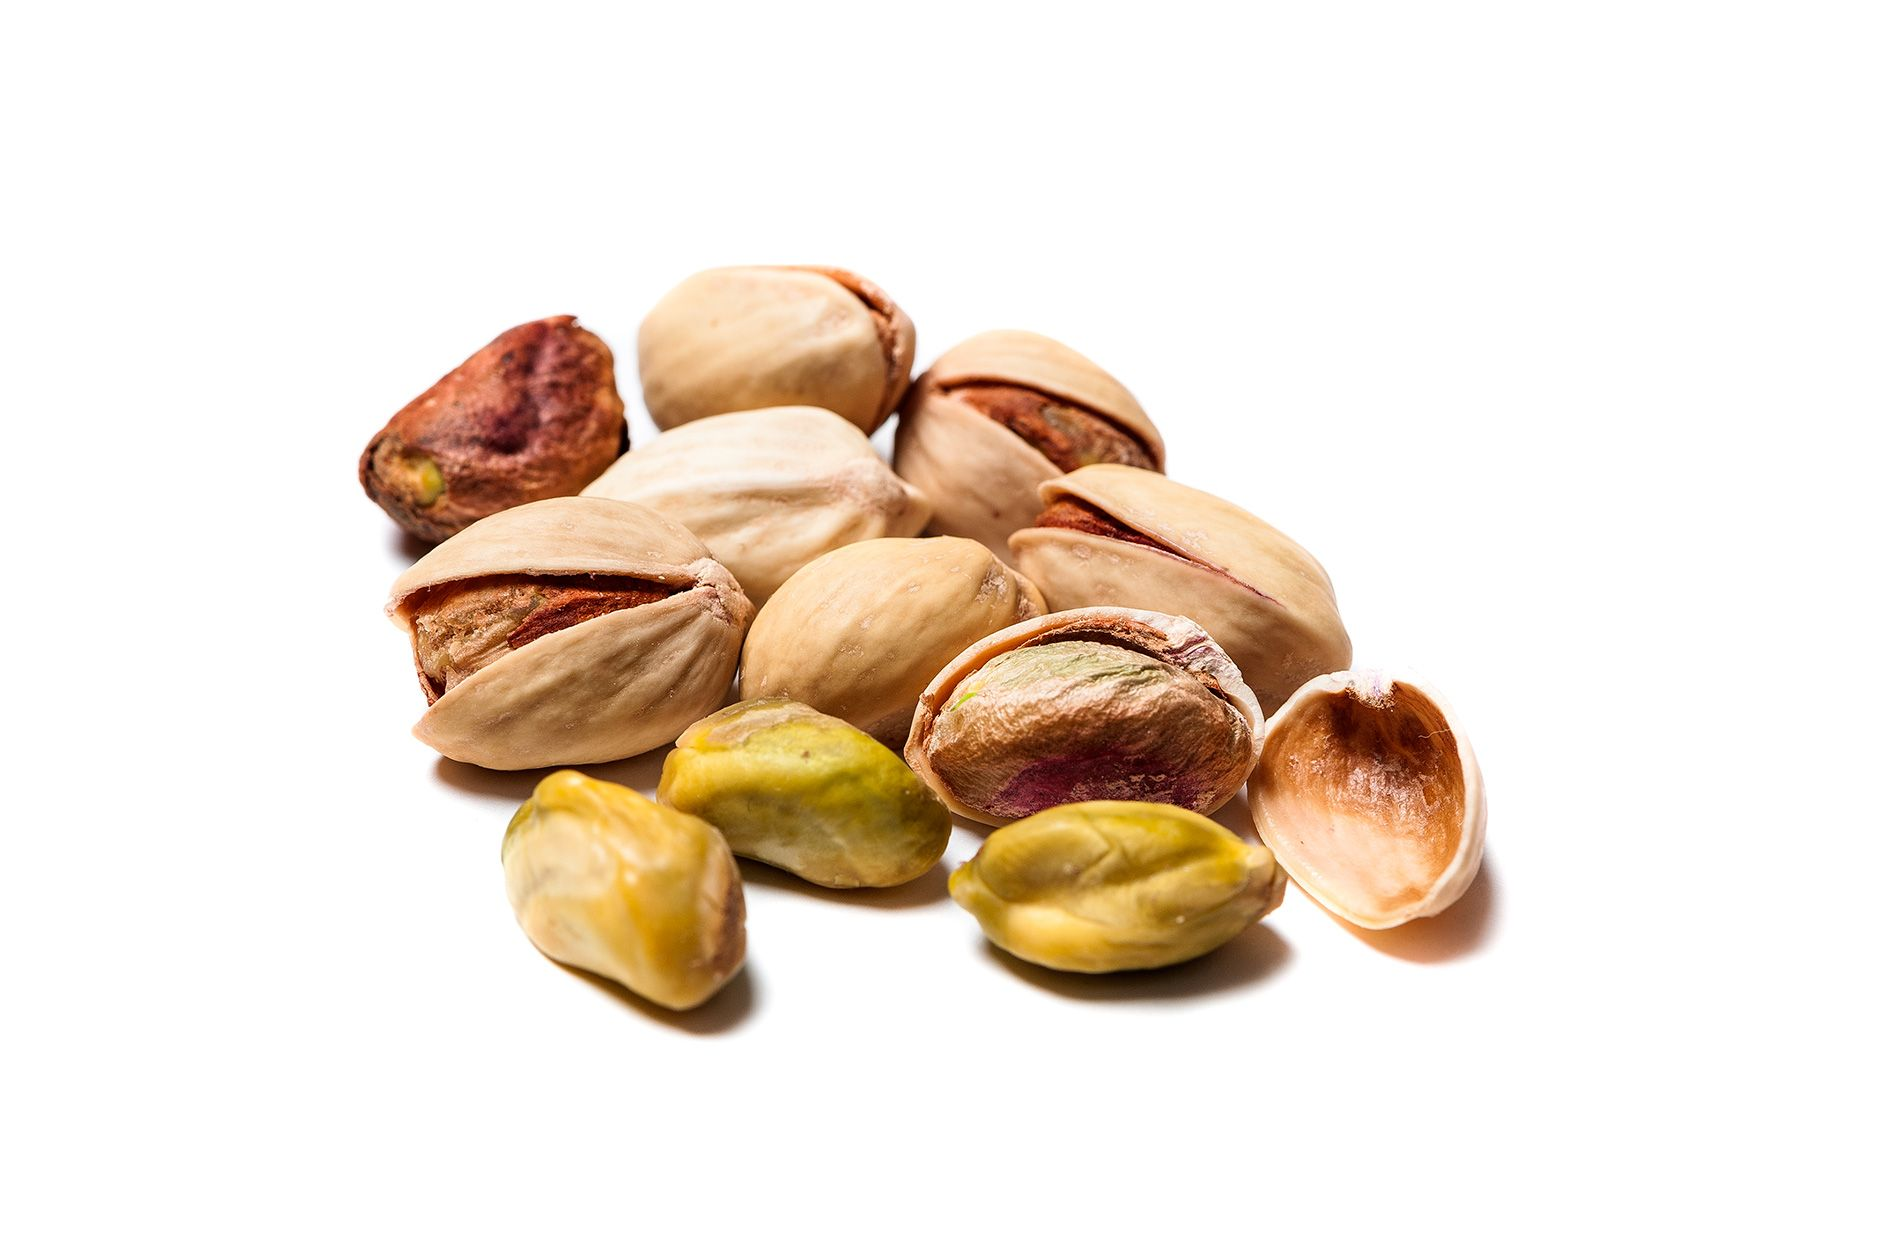 The Effect of Pistachio Consumption on Energy Intake, Satiety and Anthropometry